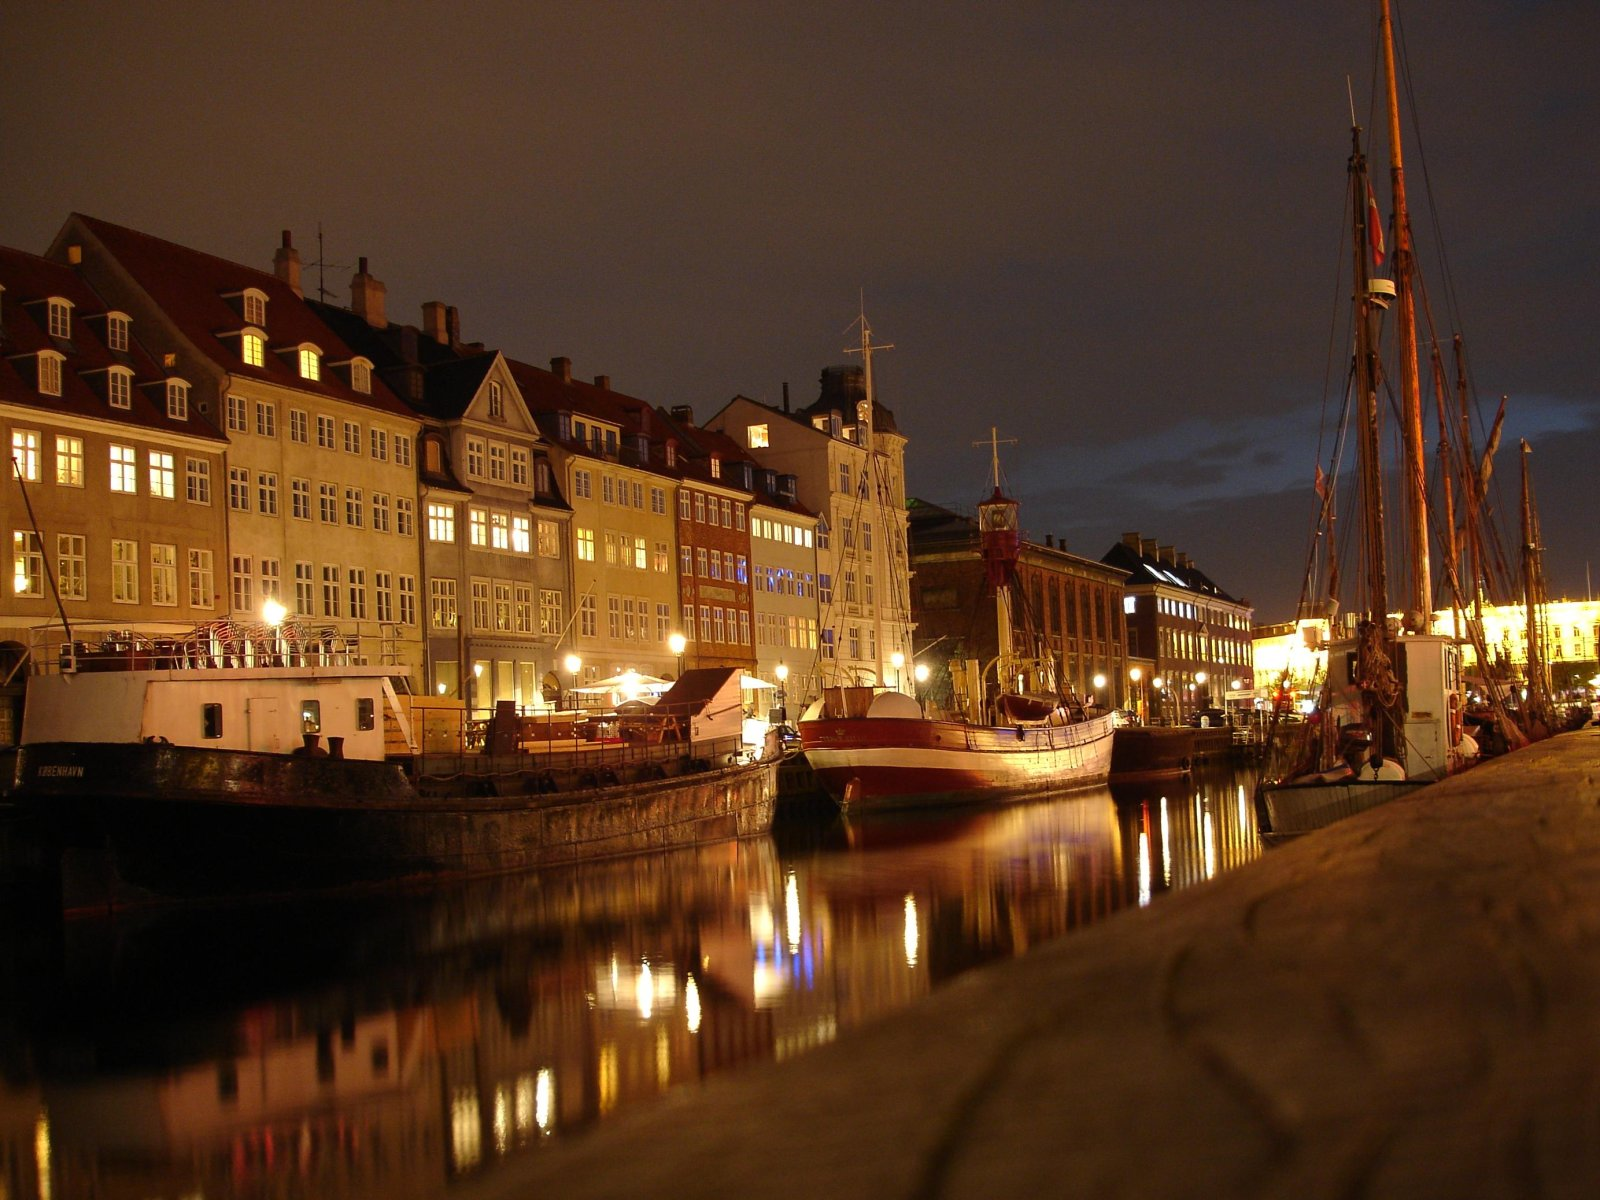 Copenhagen, Denmark, Nyhavn at night